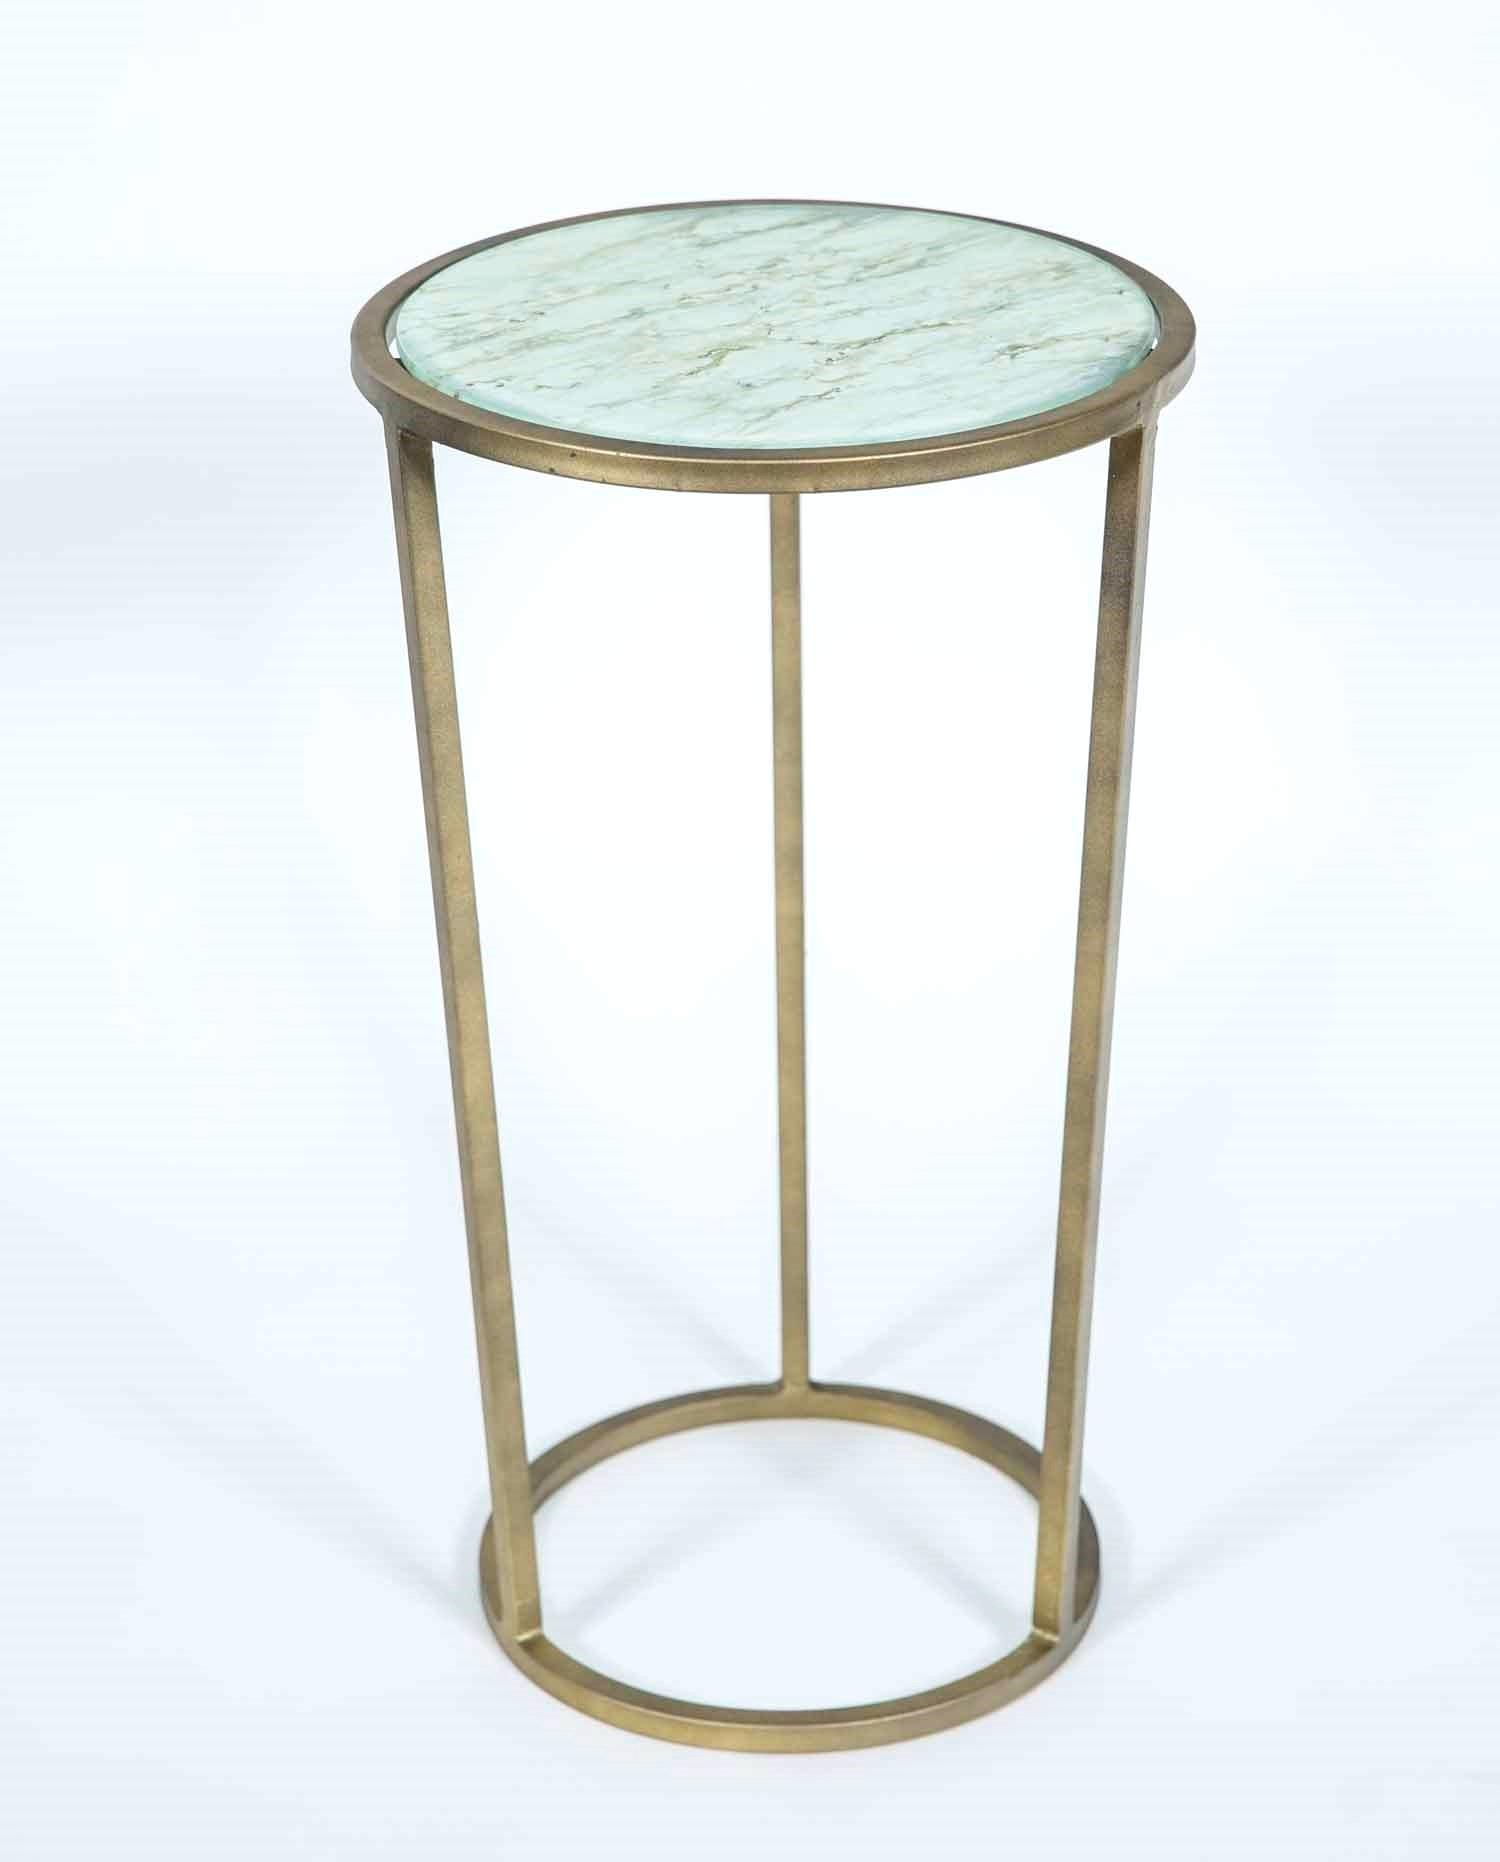 brass accent table luxuryhaircare antique with shelf wrinkled linen finish discoveries wooden patio chairs outdoor side ice bucket white decorative storage cabinet trunk end